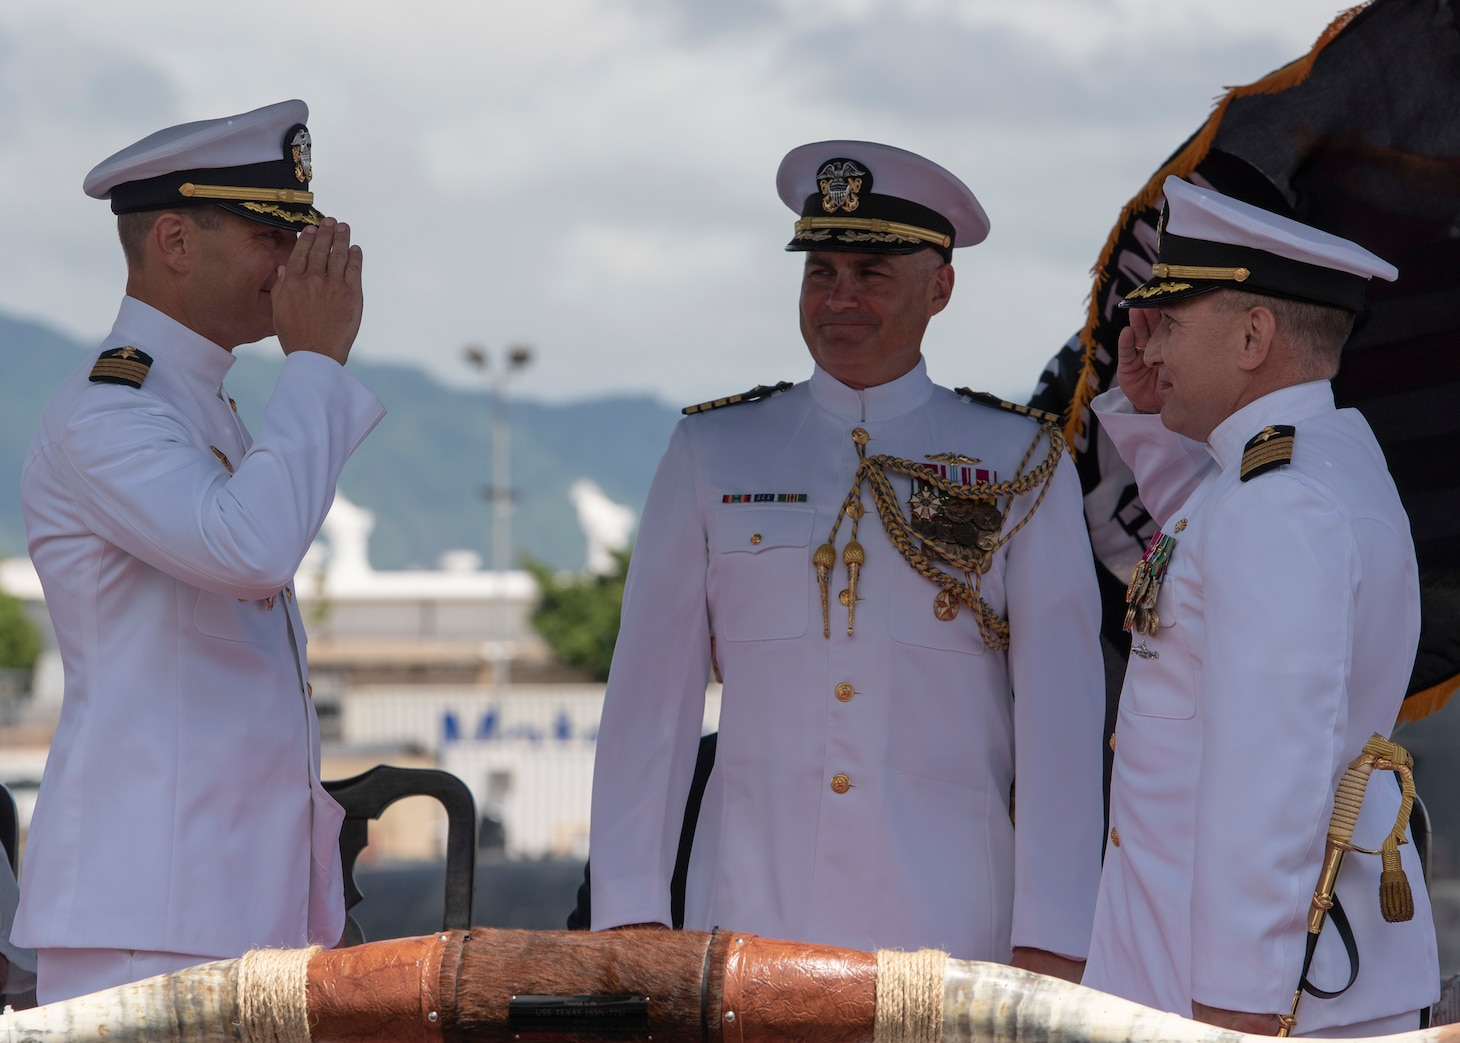 Capt. Paul Davis relieves Capt. Robert A. Roncska as commander of Submarine Squadron 7 during a change of command and retirement ceremony on the submarine piers in Joint Base Pearl Harbor-Hickam, June 22. (U.S. Navy photo by Mass Communication Specialist 2nd Class Michael H. Lee/Released)